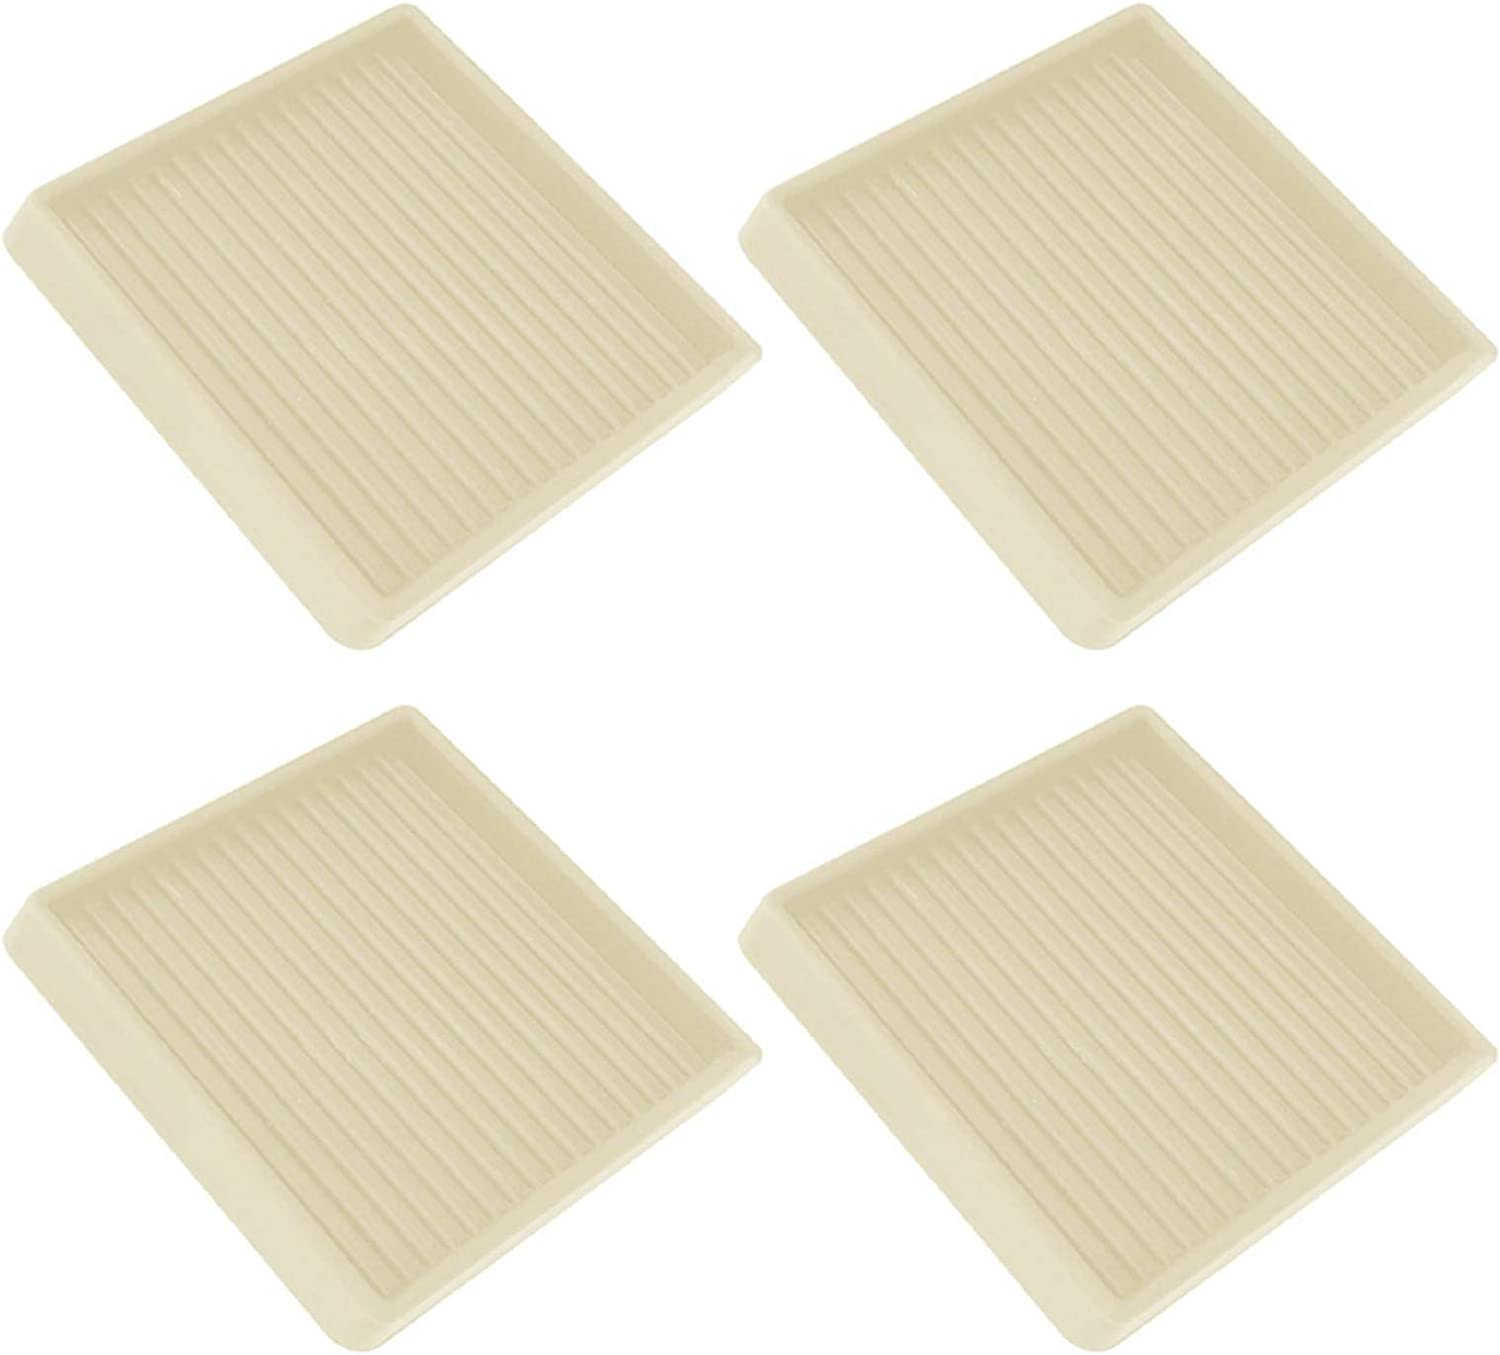 Furniture Caster Cup 4pcs Square Rubber Leg Accessories Home Non Slip Protective 3 Inch Scratch Proof sliding Table Chair Floor Grip(Beige)